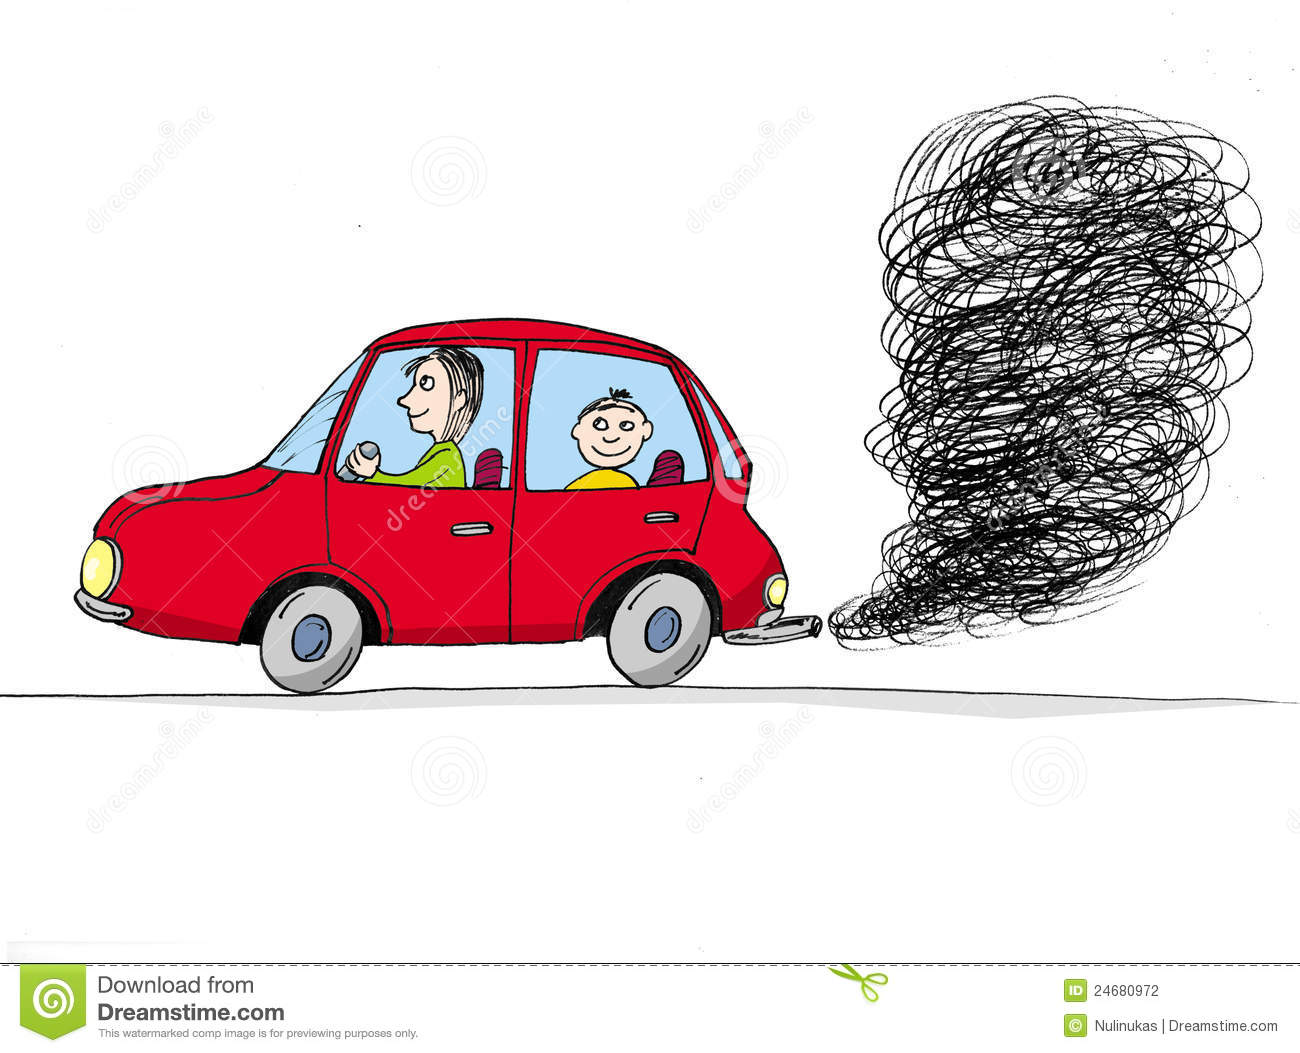 Car smoke car clipart png download Smoke From Car Clipart - Clipart Kid png download